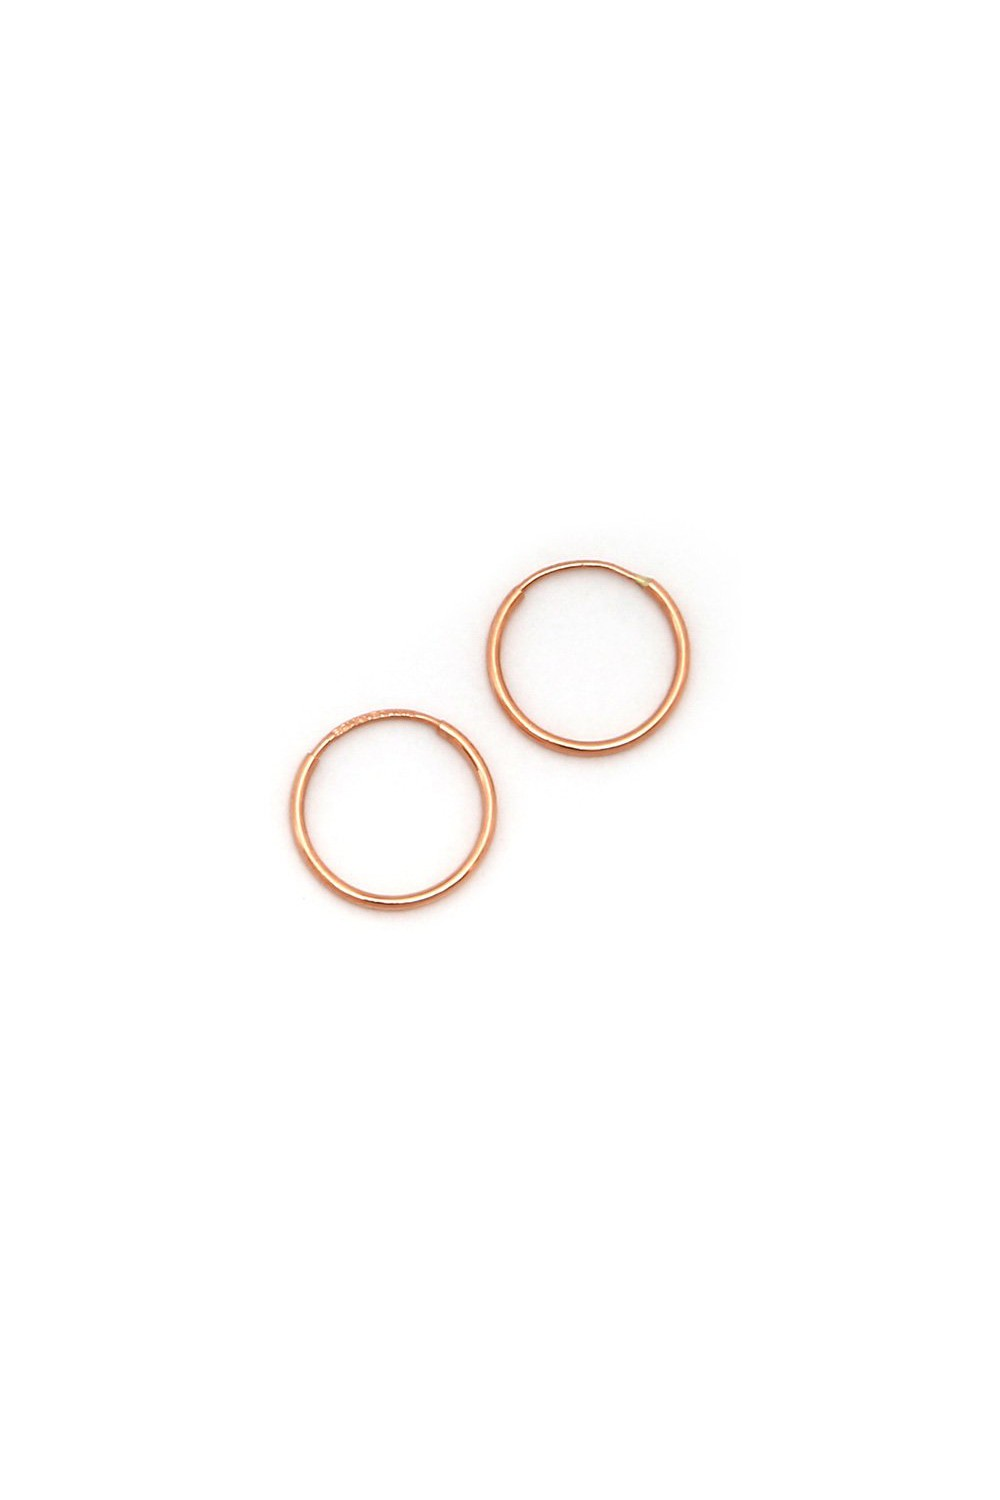 3ad7983710633 14k Yellow, White or Rose Gold 1mm Thin Small Endless Hoop Earrings, 10mm